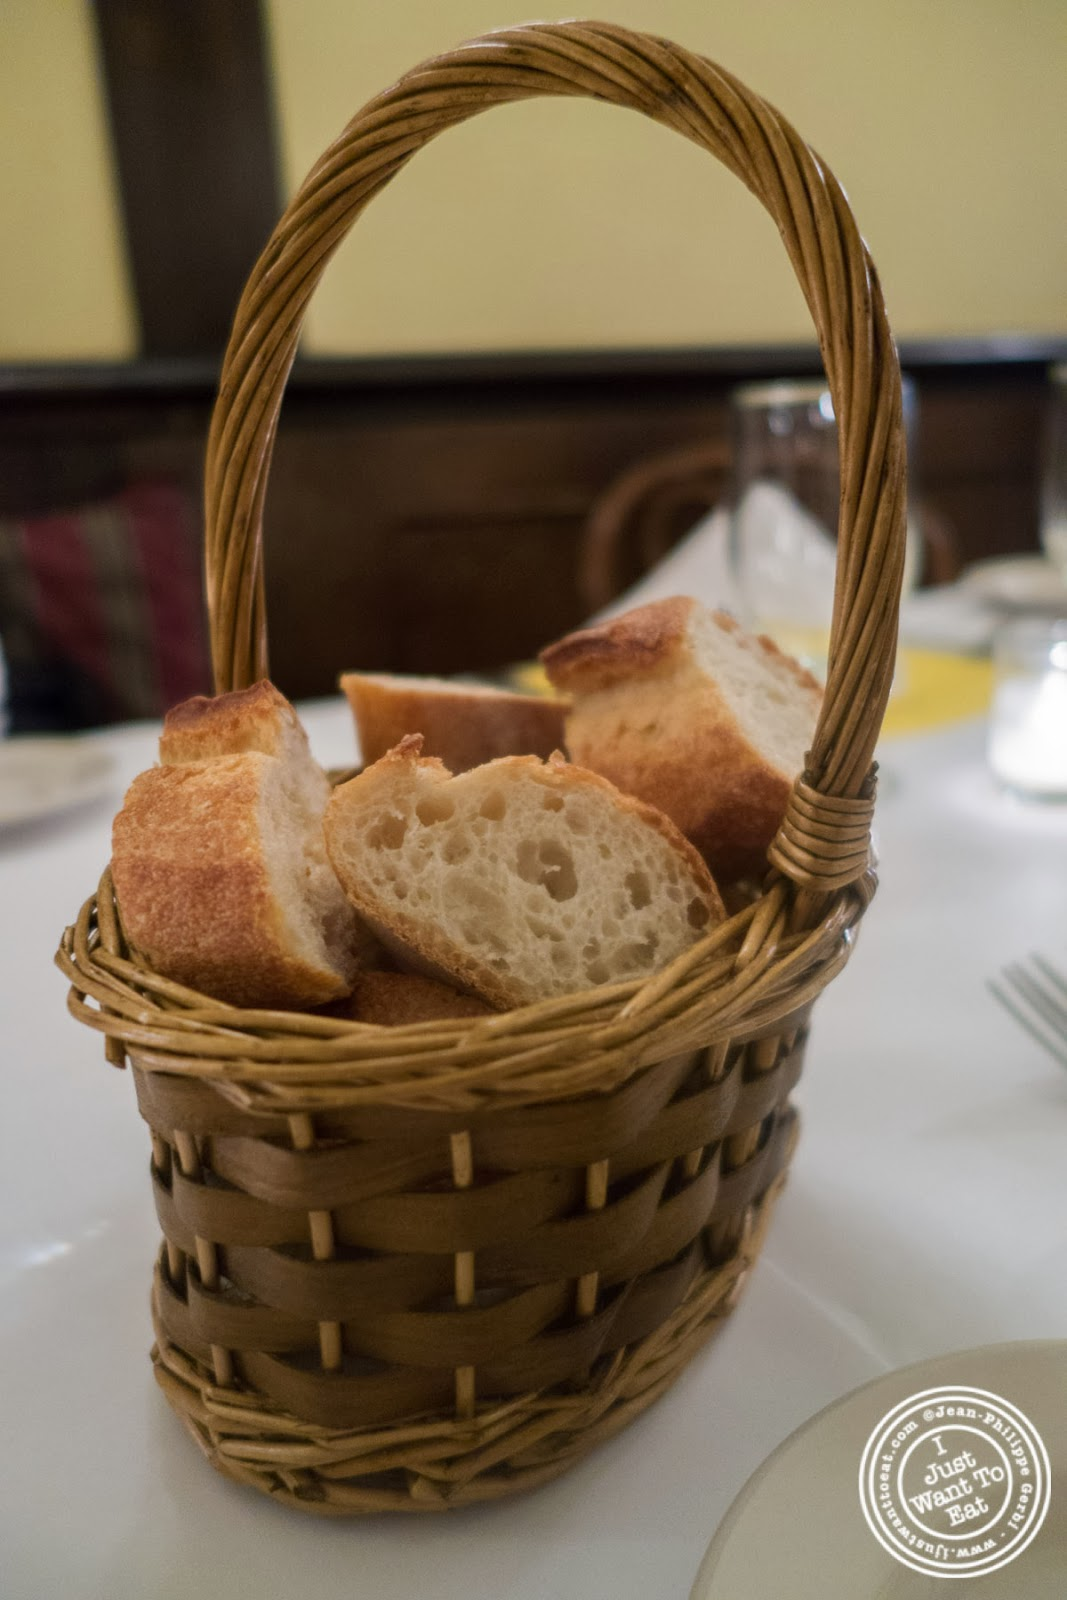 image of baguette at Sel et Poivre on the Upper East Side, NYC, New York